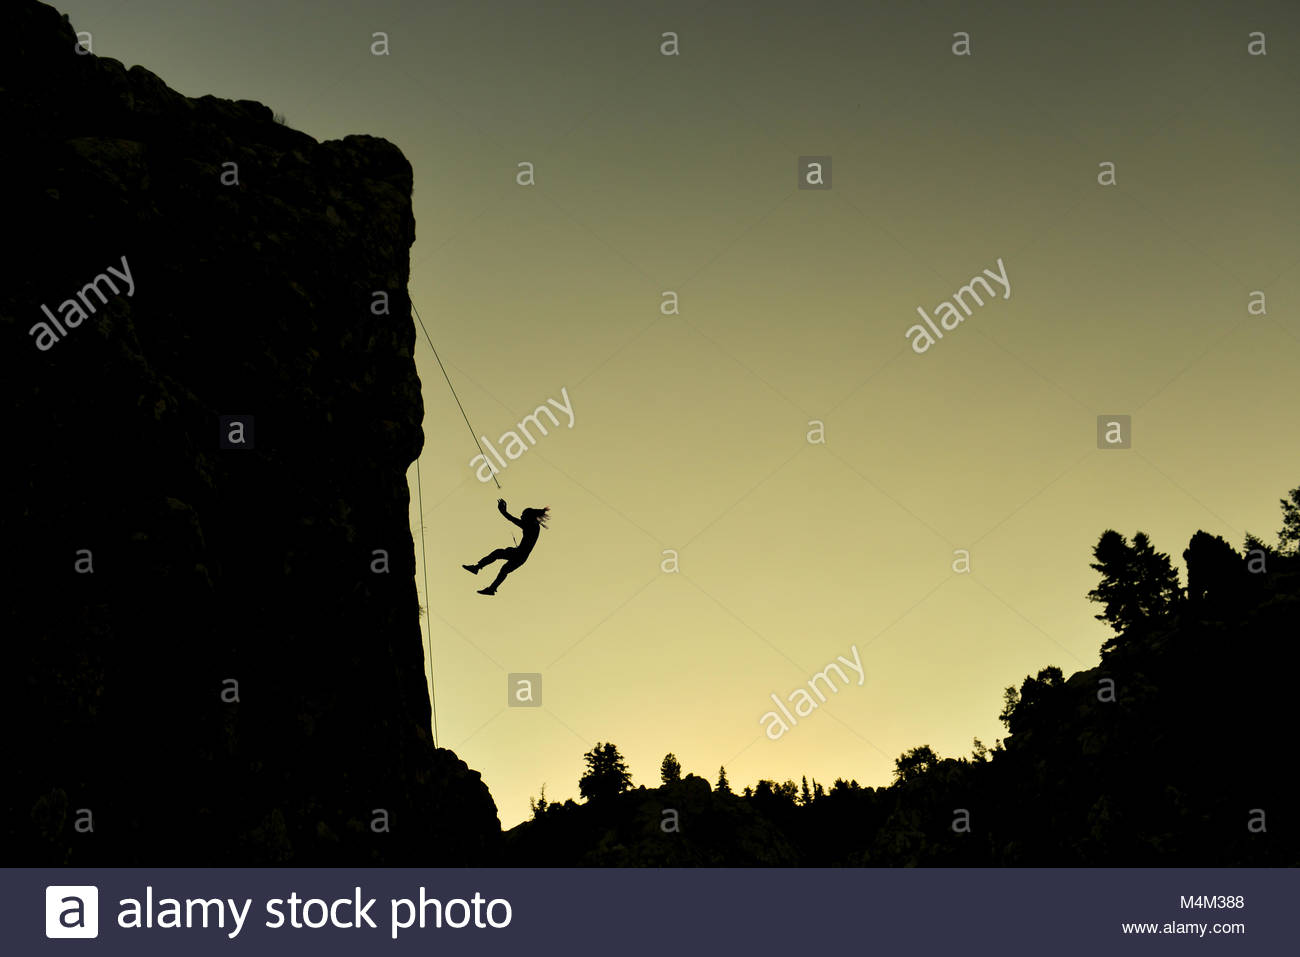 Climbing accidents and material selection - Stock Image